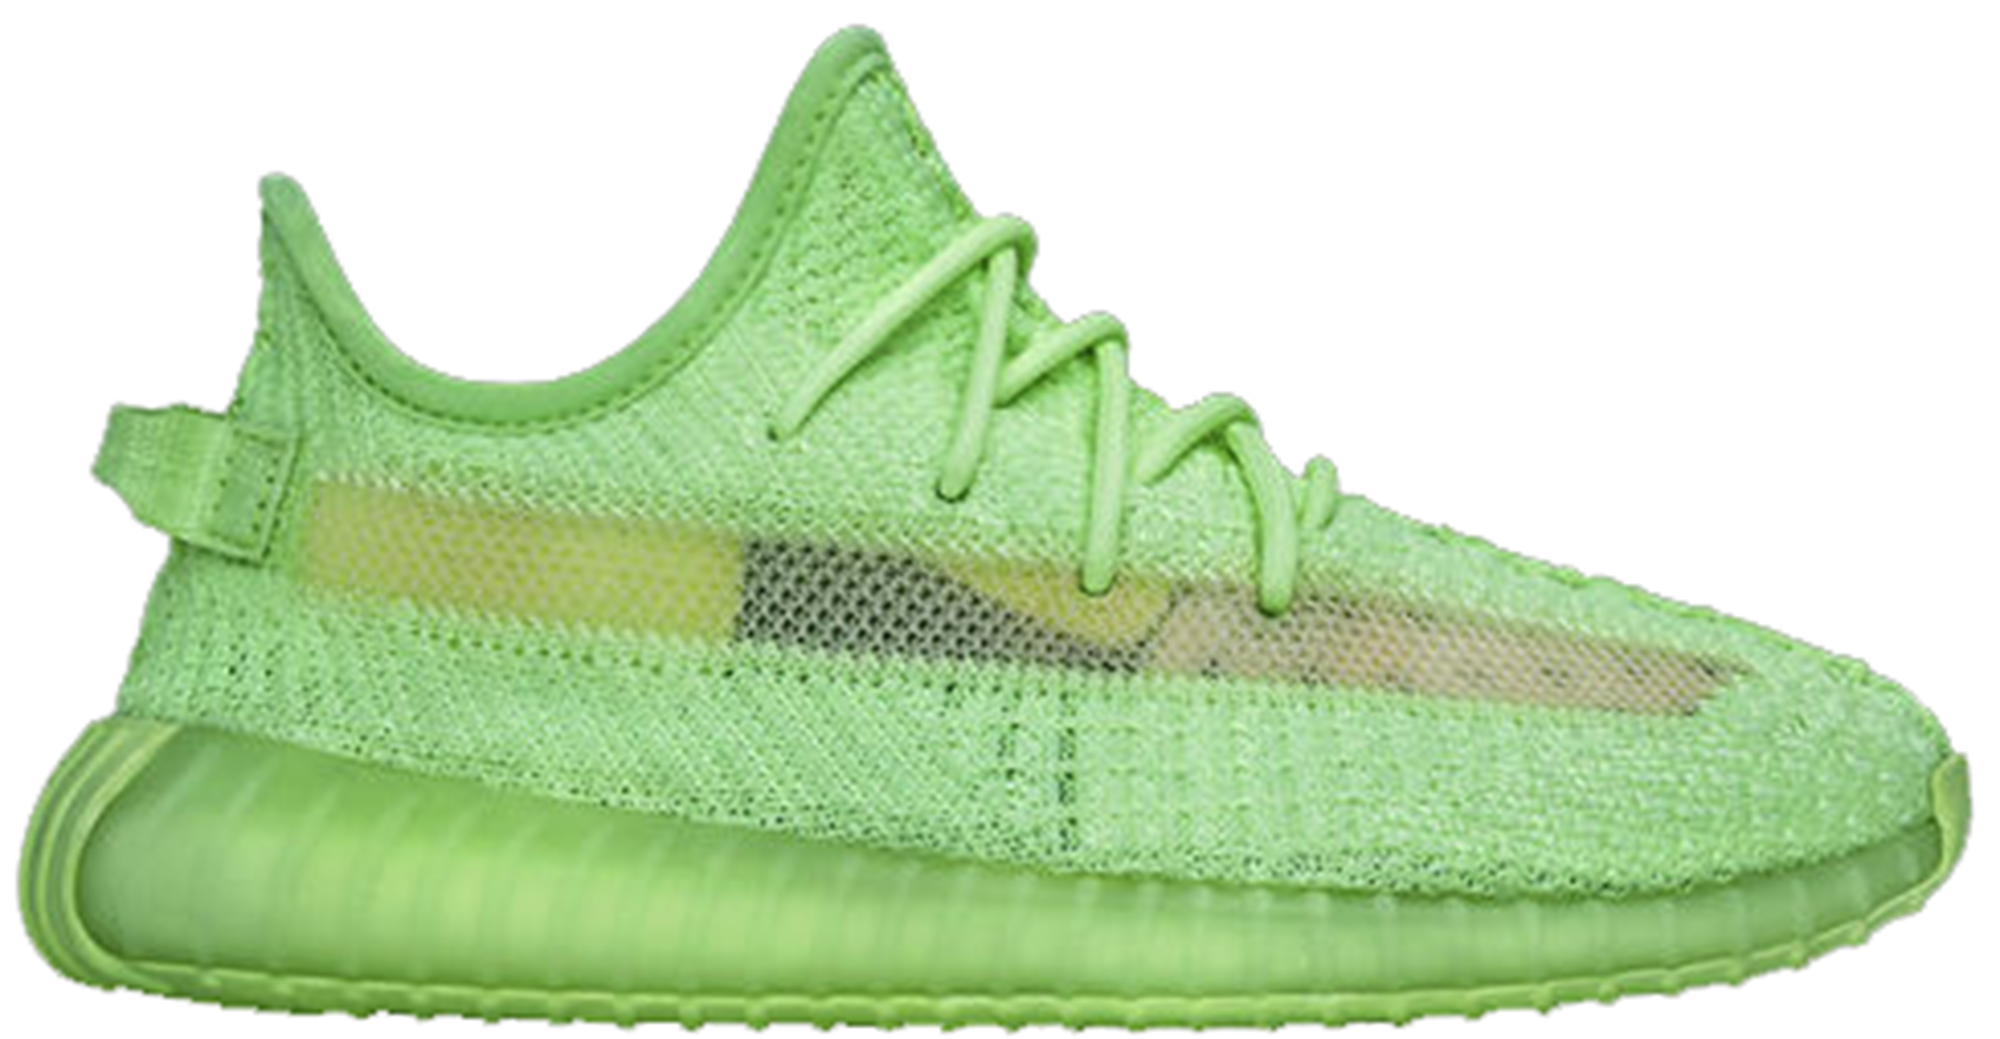 adidas Yeezy Boost 350 V2 Glow (PS)